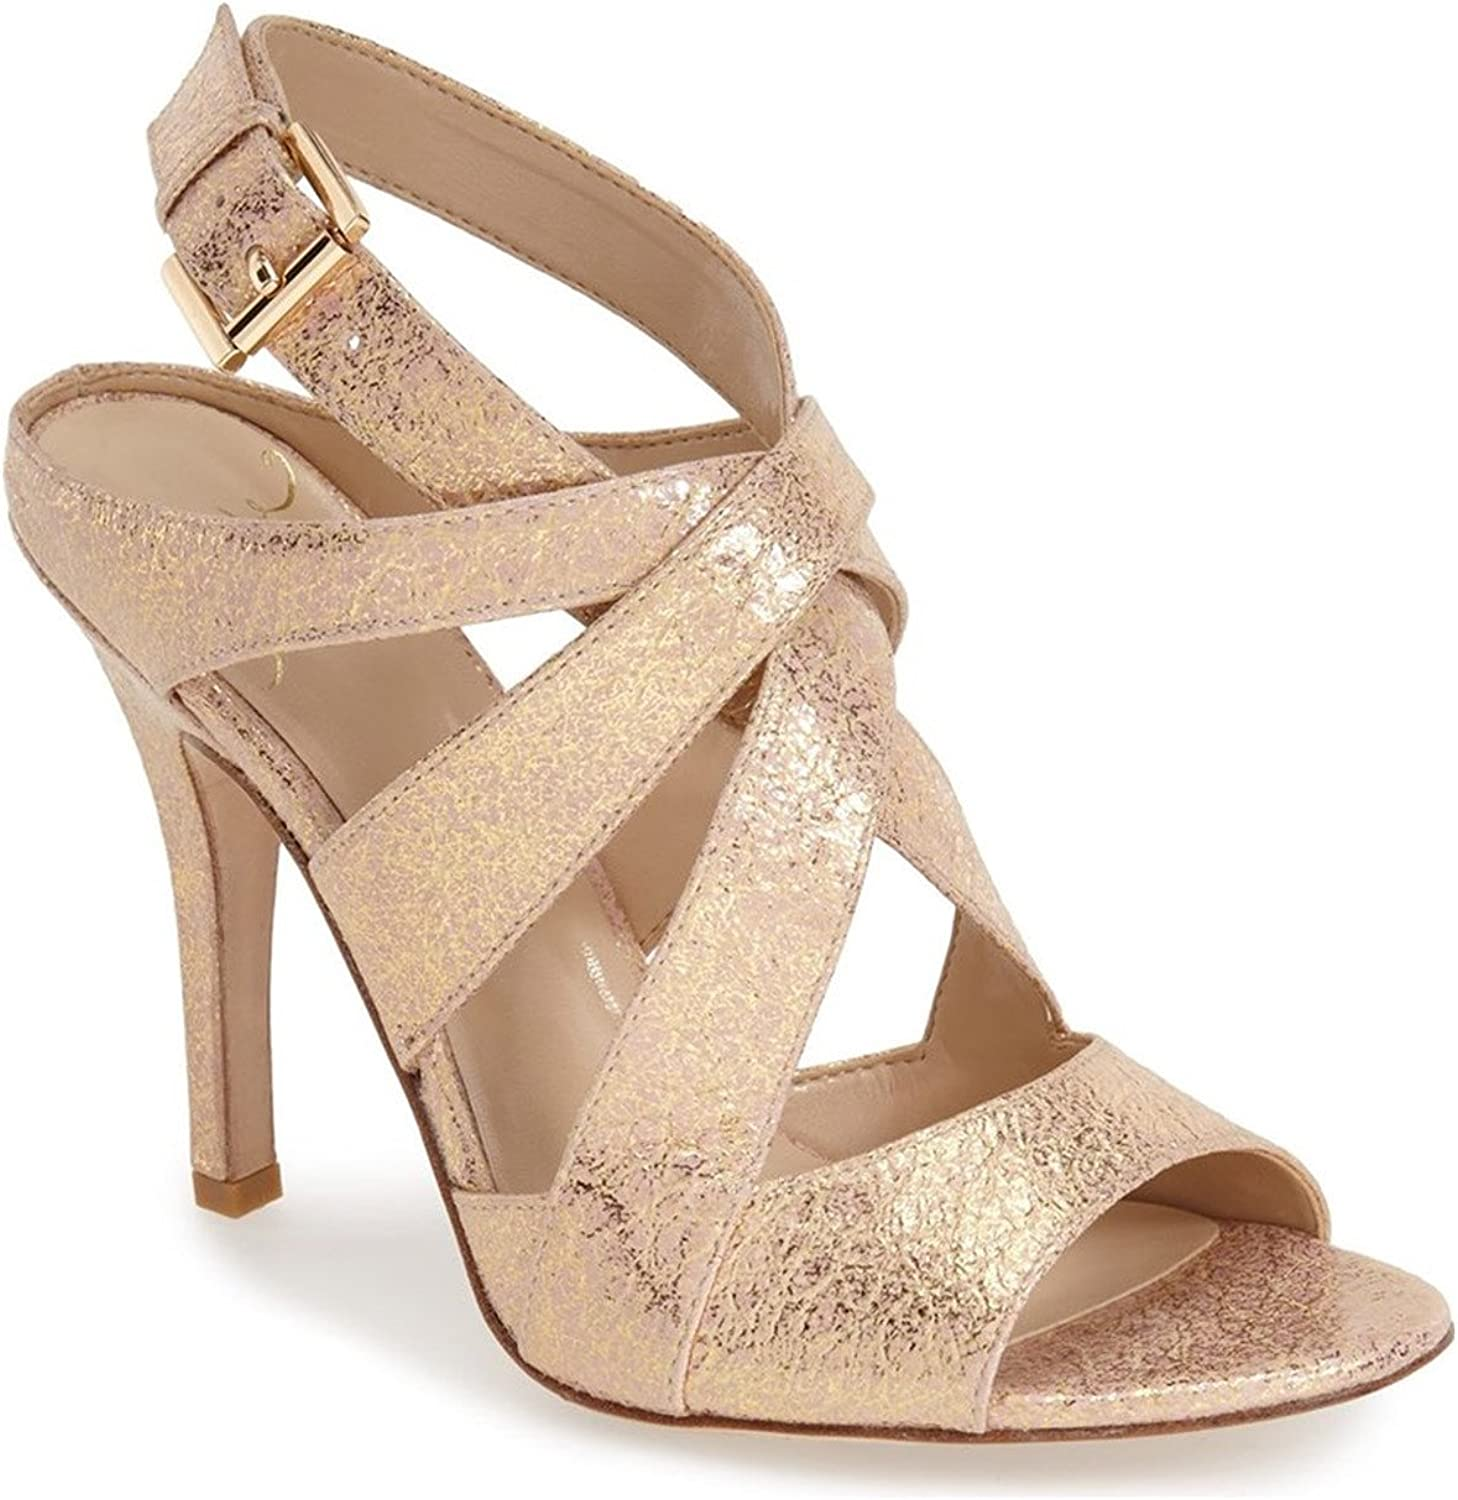 Kay Unger 'Phoebe Collection' Sussex Sandal, gold Pink Multi